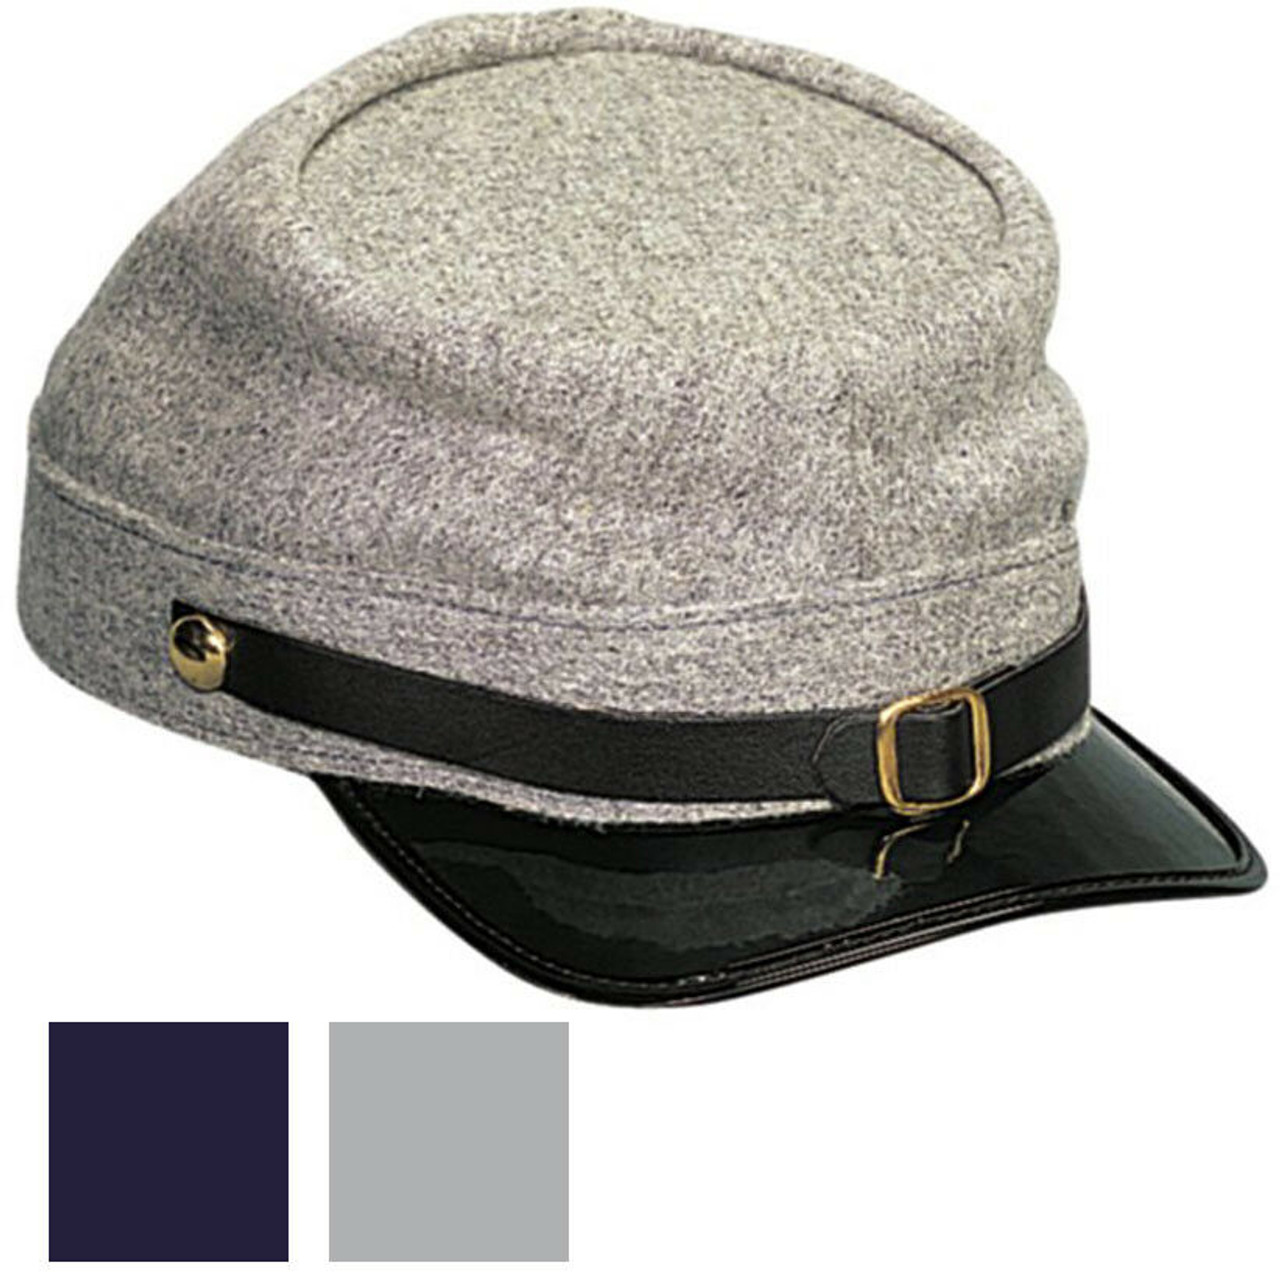 Civil War Wool Kepi In Confederate Grey or Union Navy Blue 5343-5344 Rothco